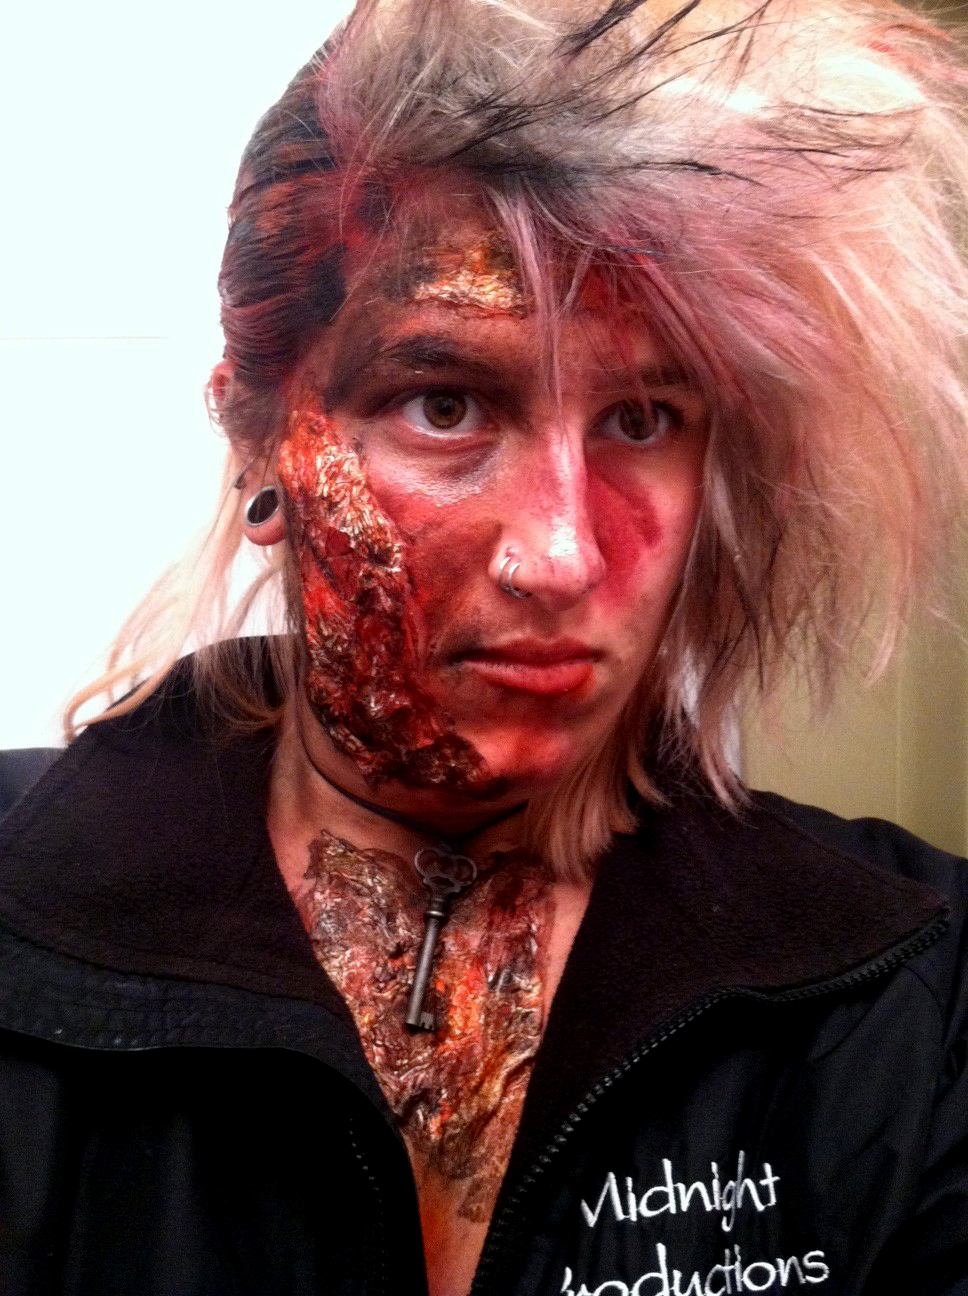 burn effects makeup